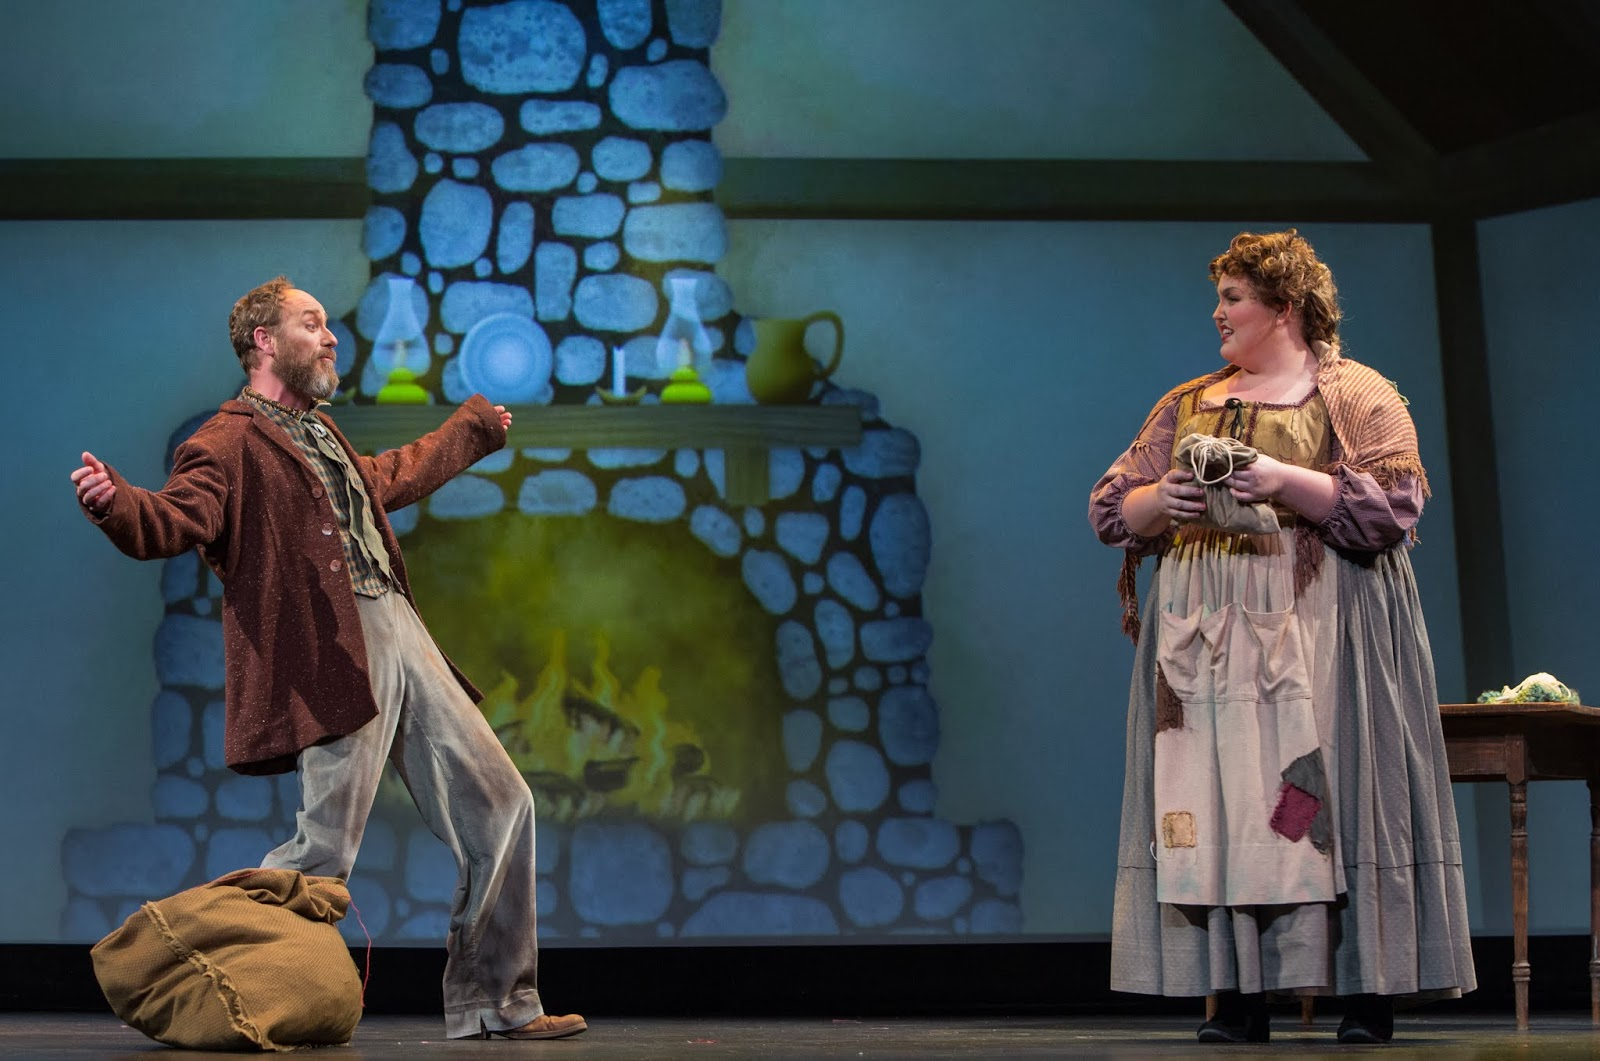 IN PERFORMANCE: baritone SCOTT MACLEOD as Peter (left) and soprano LYNDSEY SWANN as Gertrud (right) in Greensboro Opera's March 2019 production of Engelbert Humperdinck's HÄNSEL UND GRETEL [Photograph © by VanderVeen Photographers]